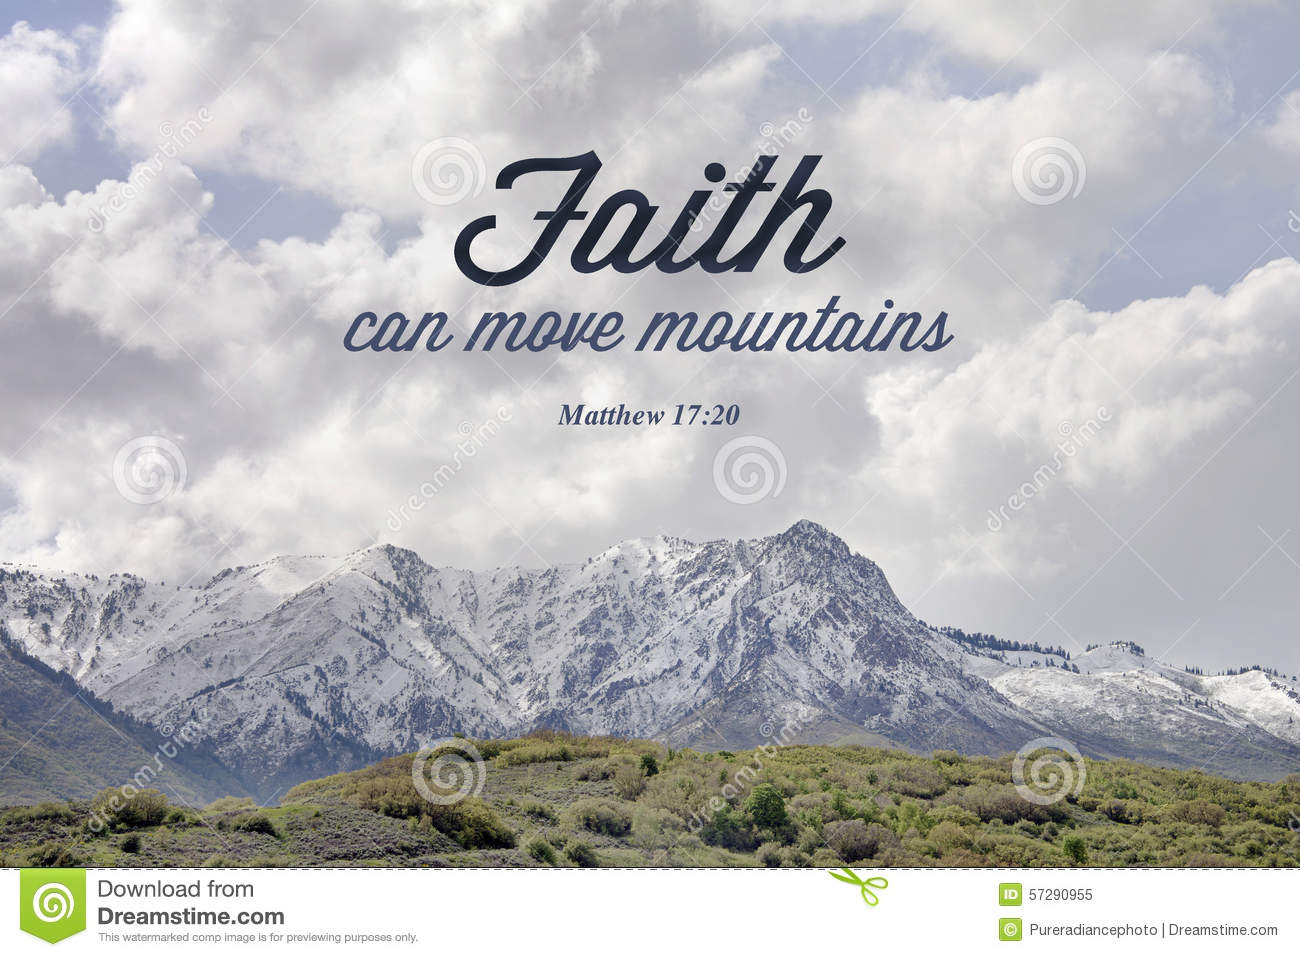 ... of faith can move mountians from the bible verse out of matt 17:20